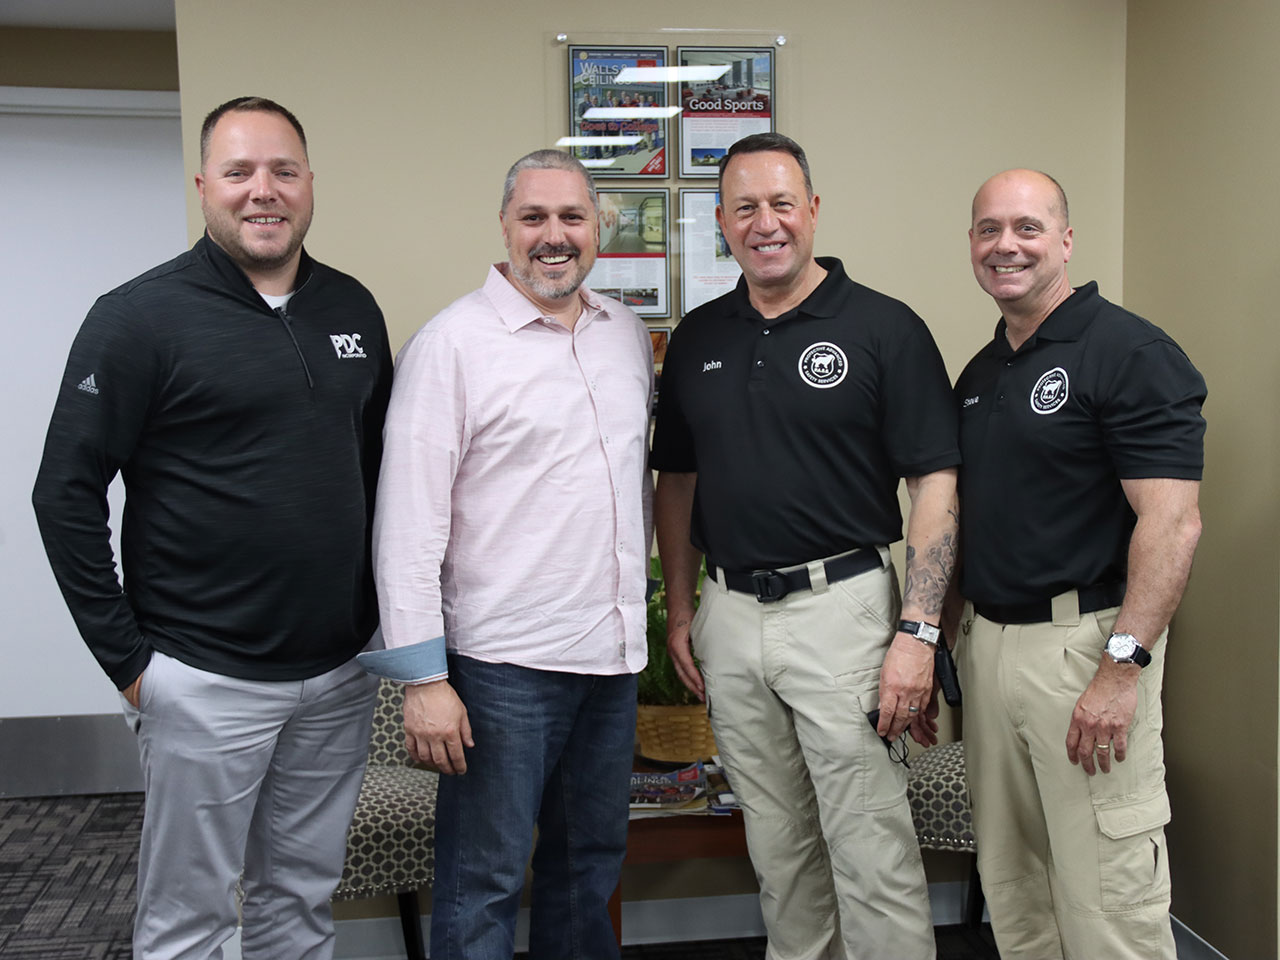 team copletes active shooter training